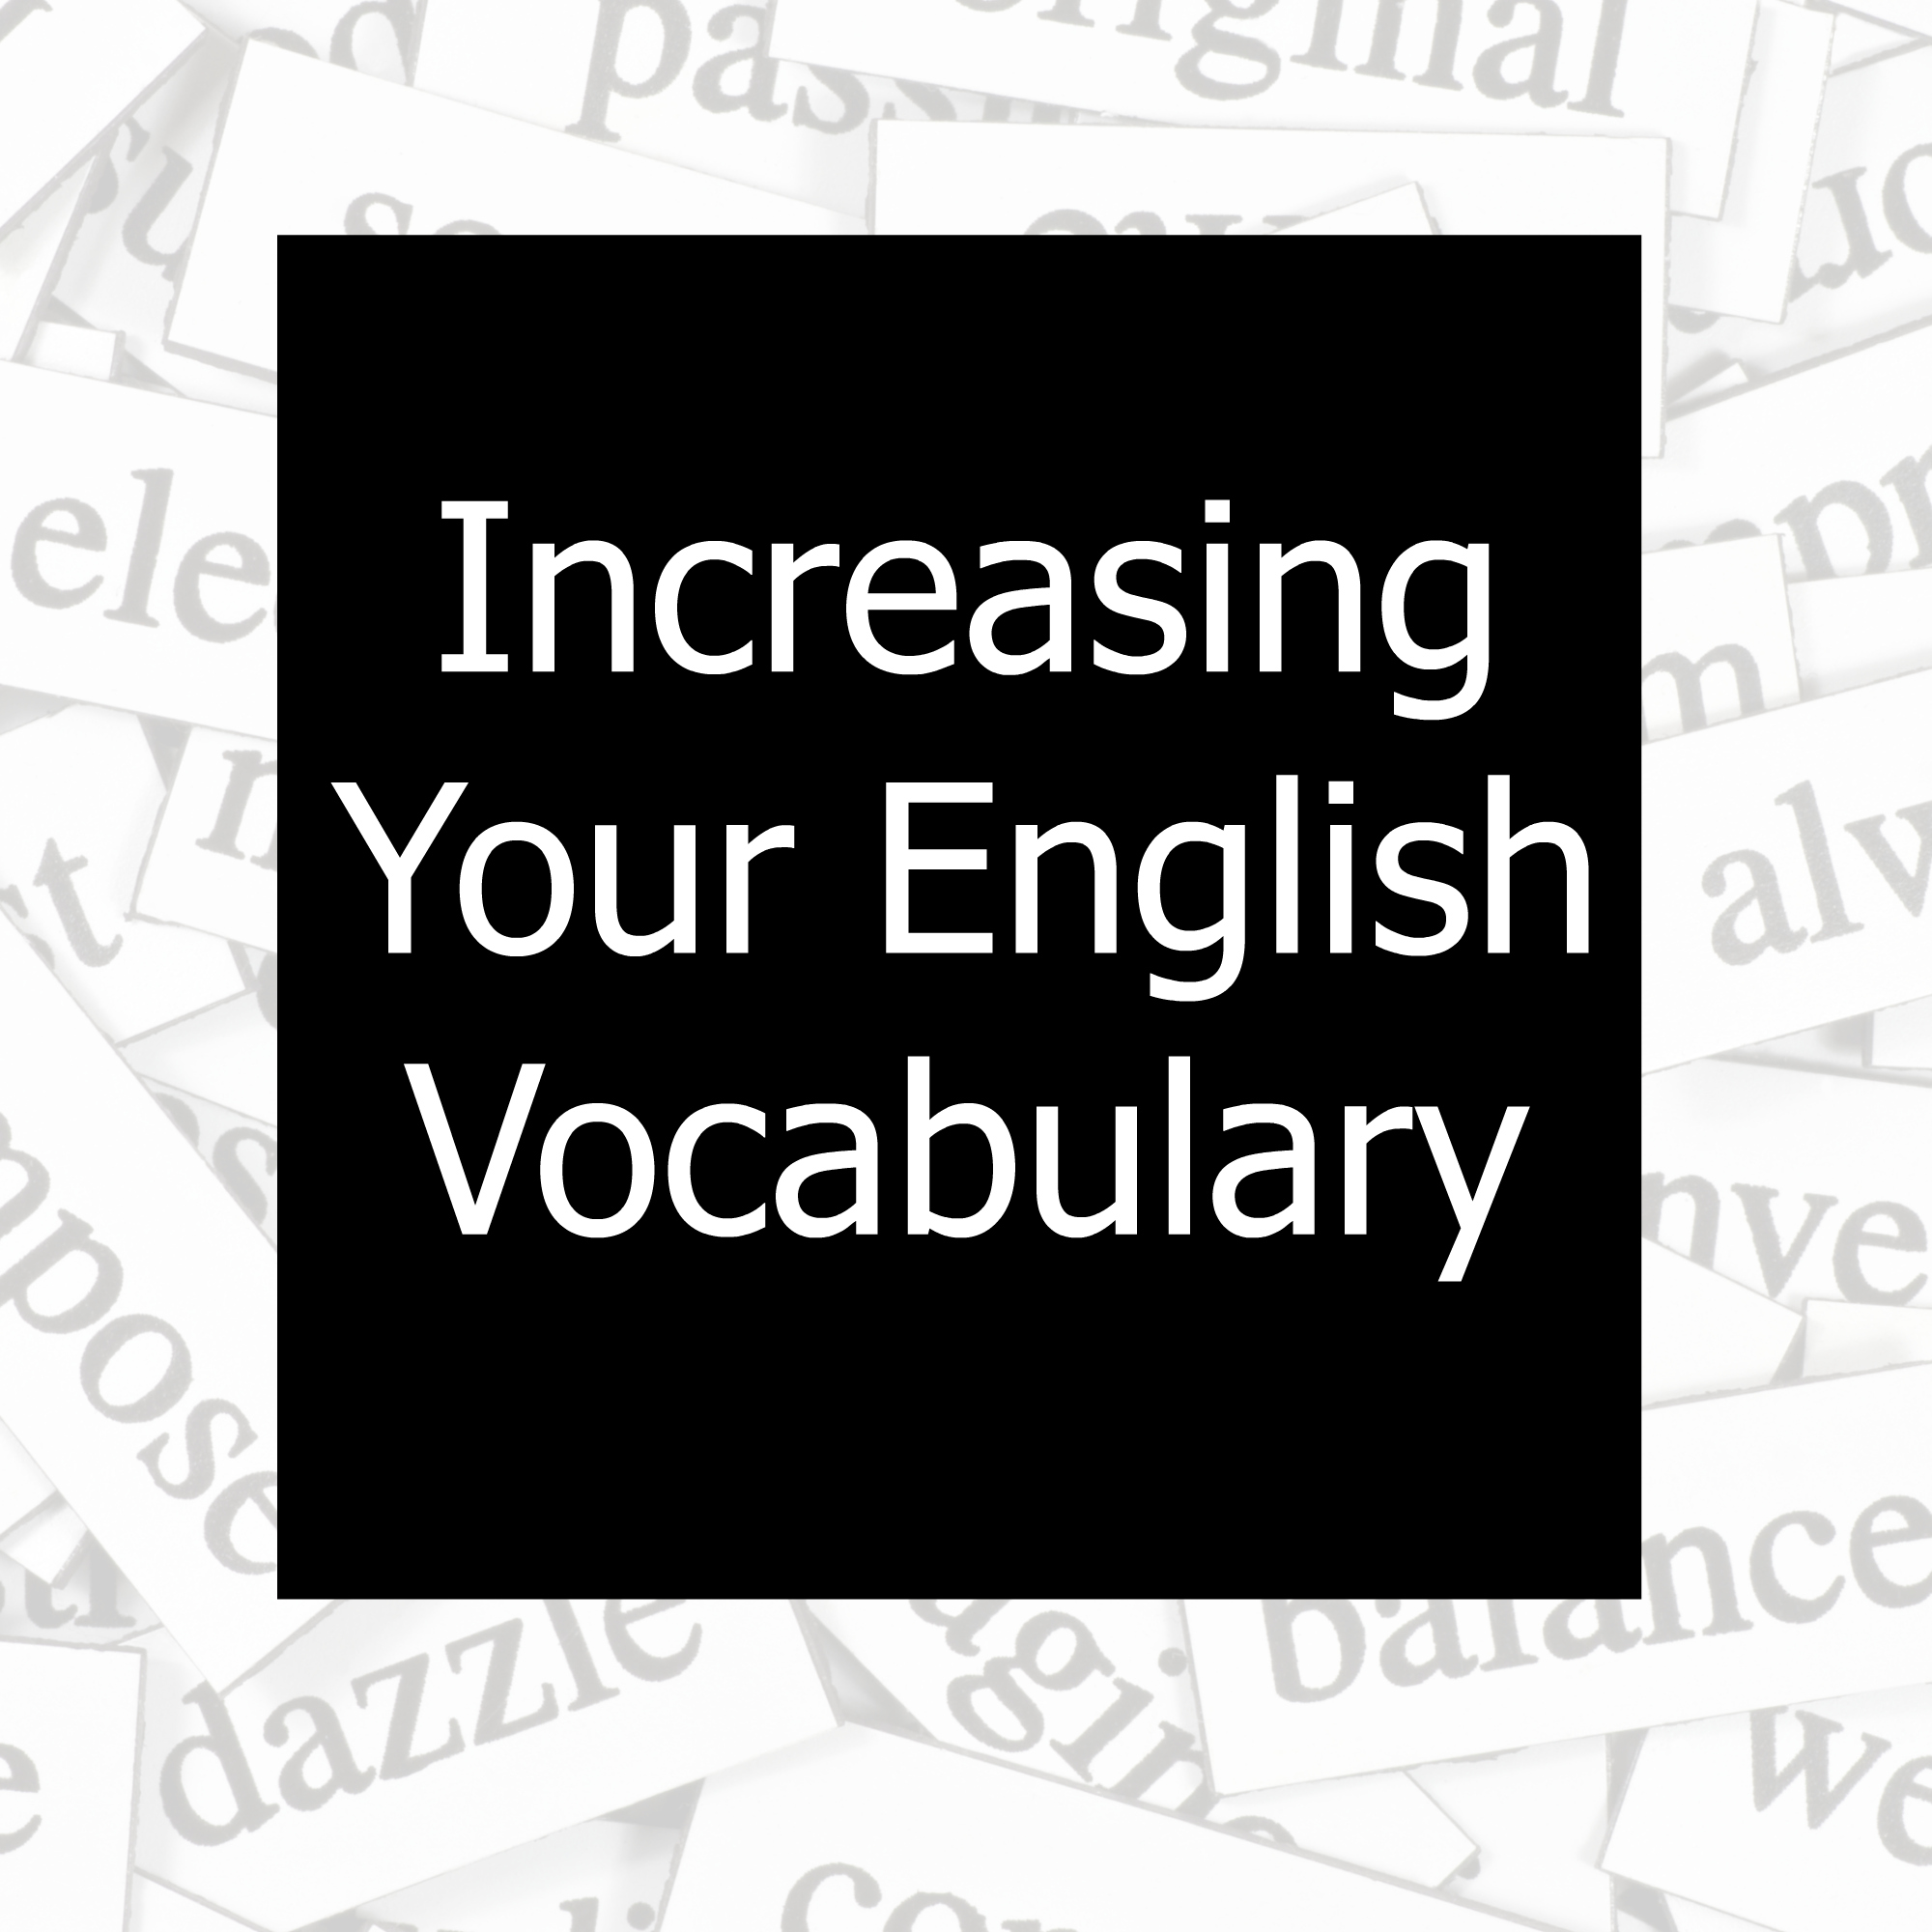 Vocabulary Archives SkypEnglishu - 15 words that dont exist but we definitely need inside our vocabulary